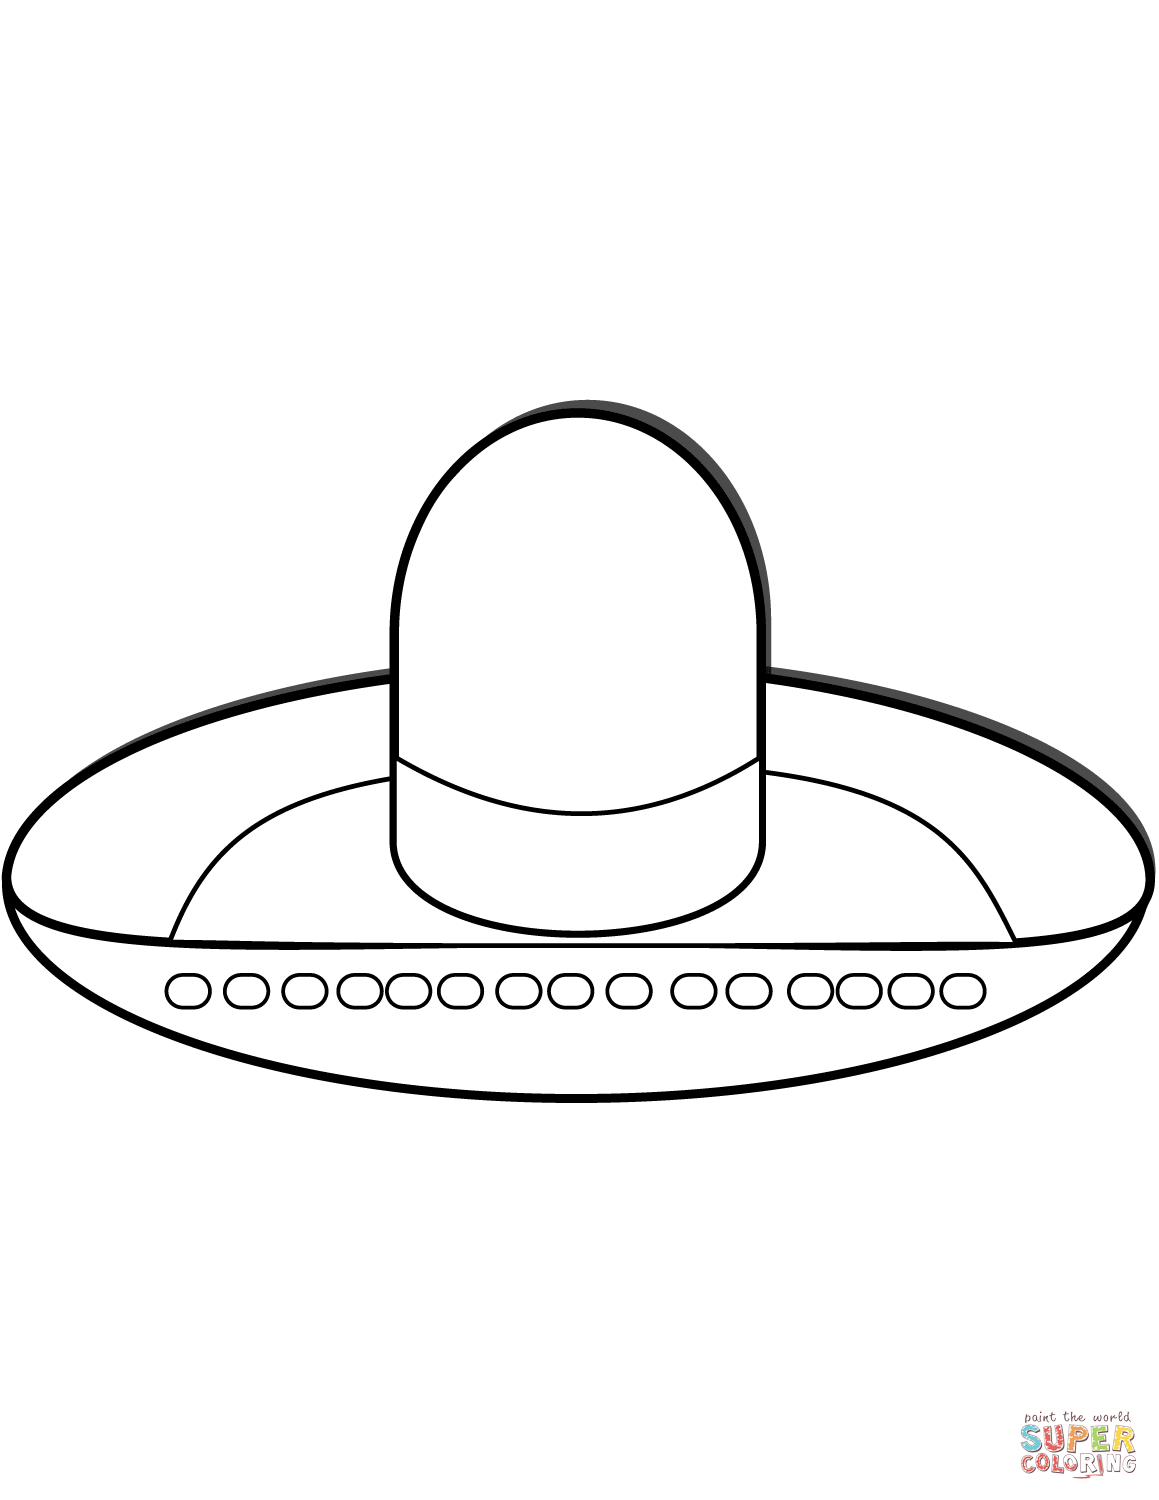 Coloring Worksheet Of Pilgrim Hat